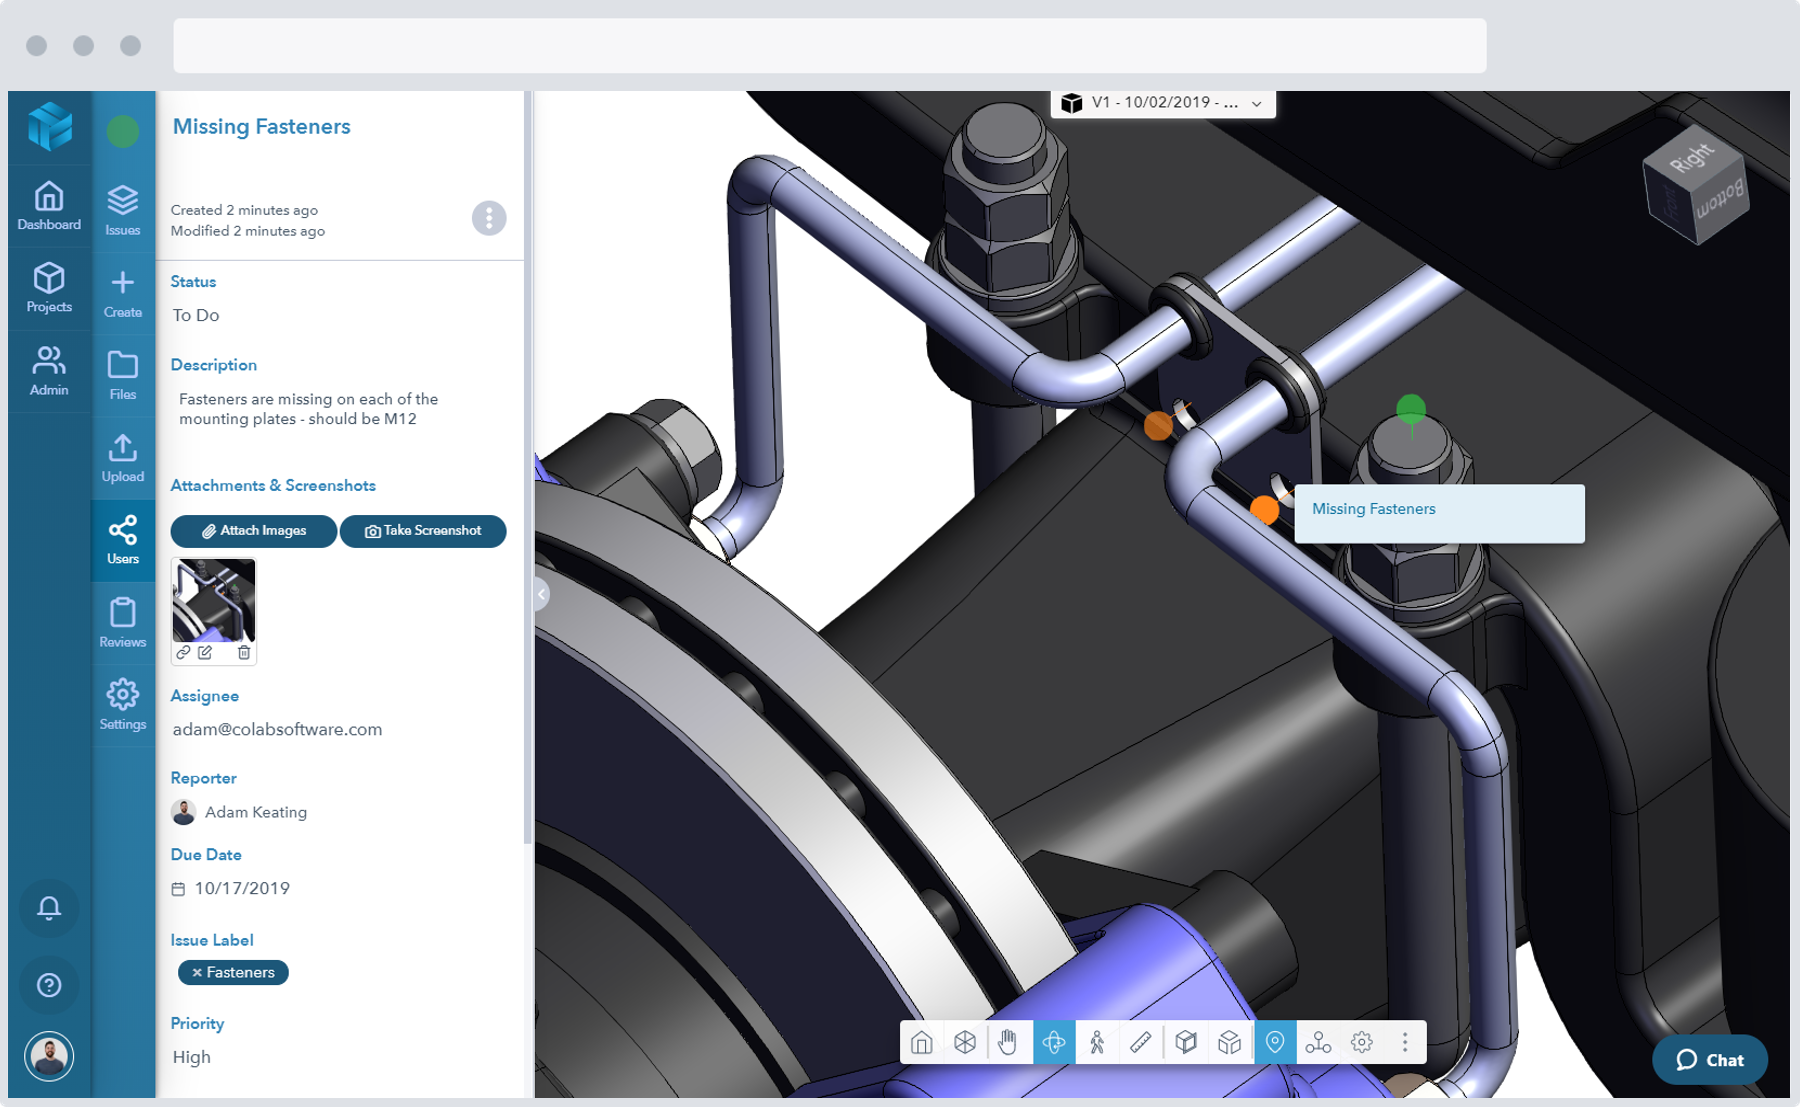 Screenshot of the Gradient program management system for managing the automotive supply chain